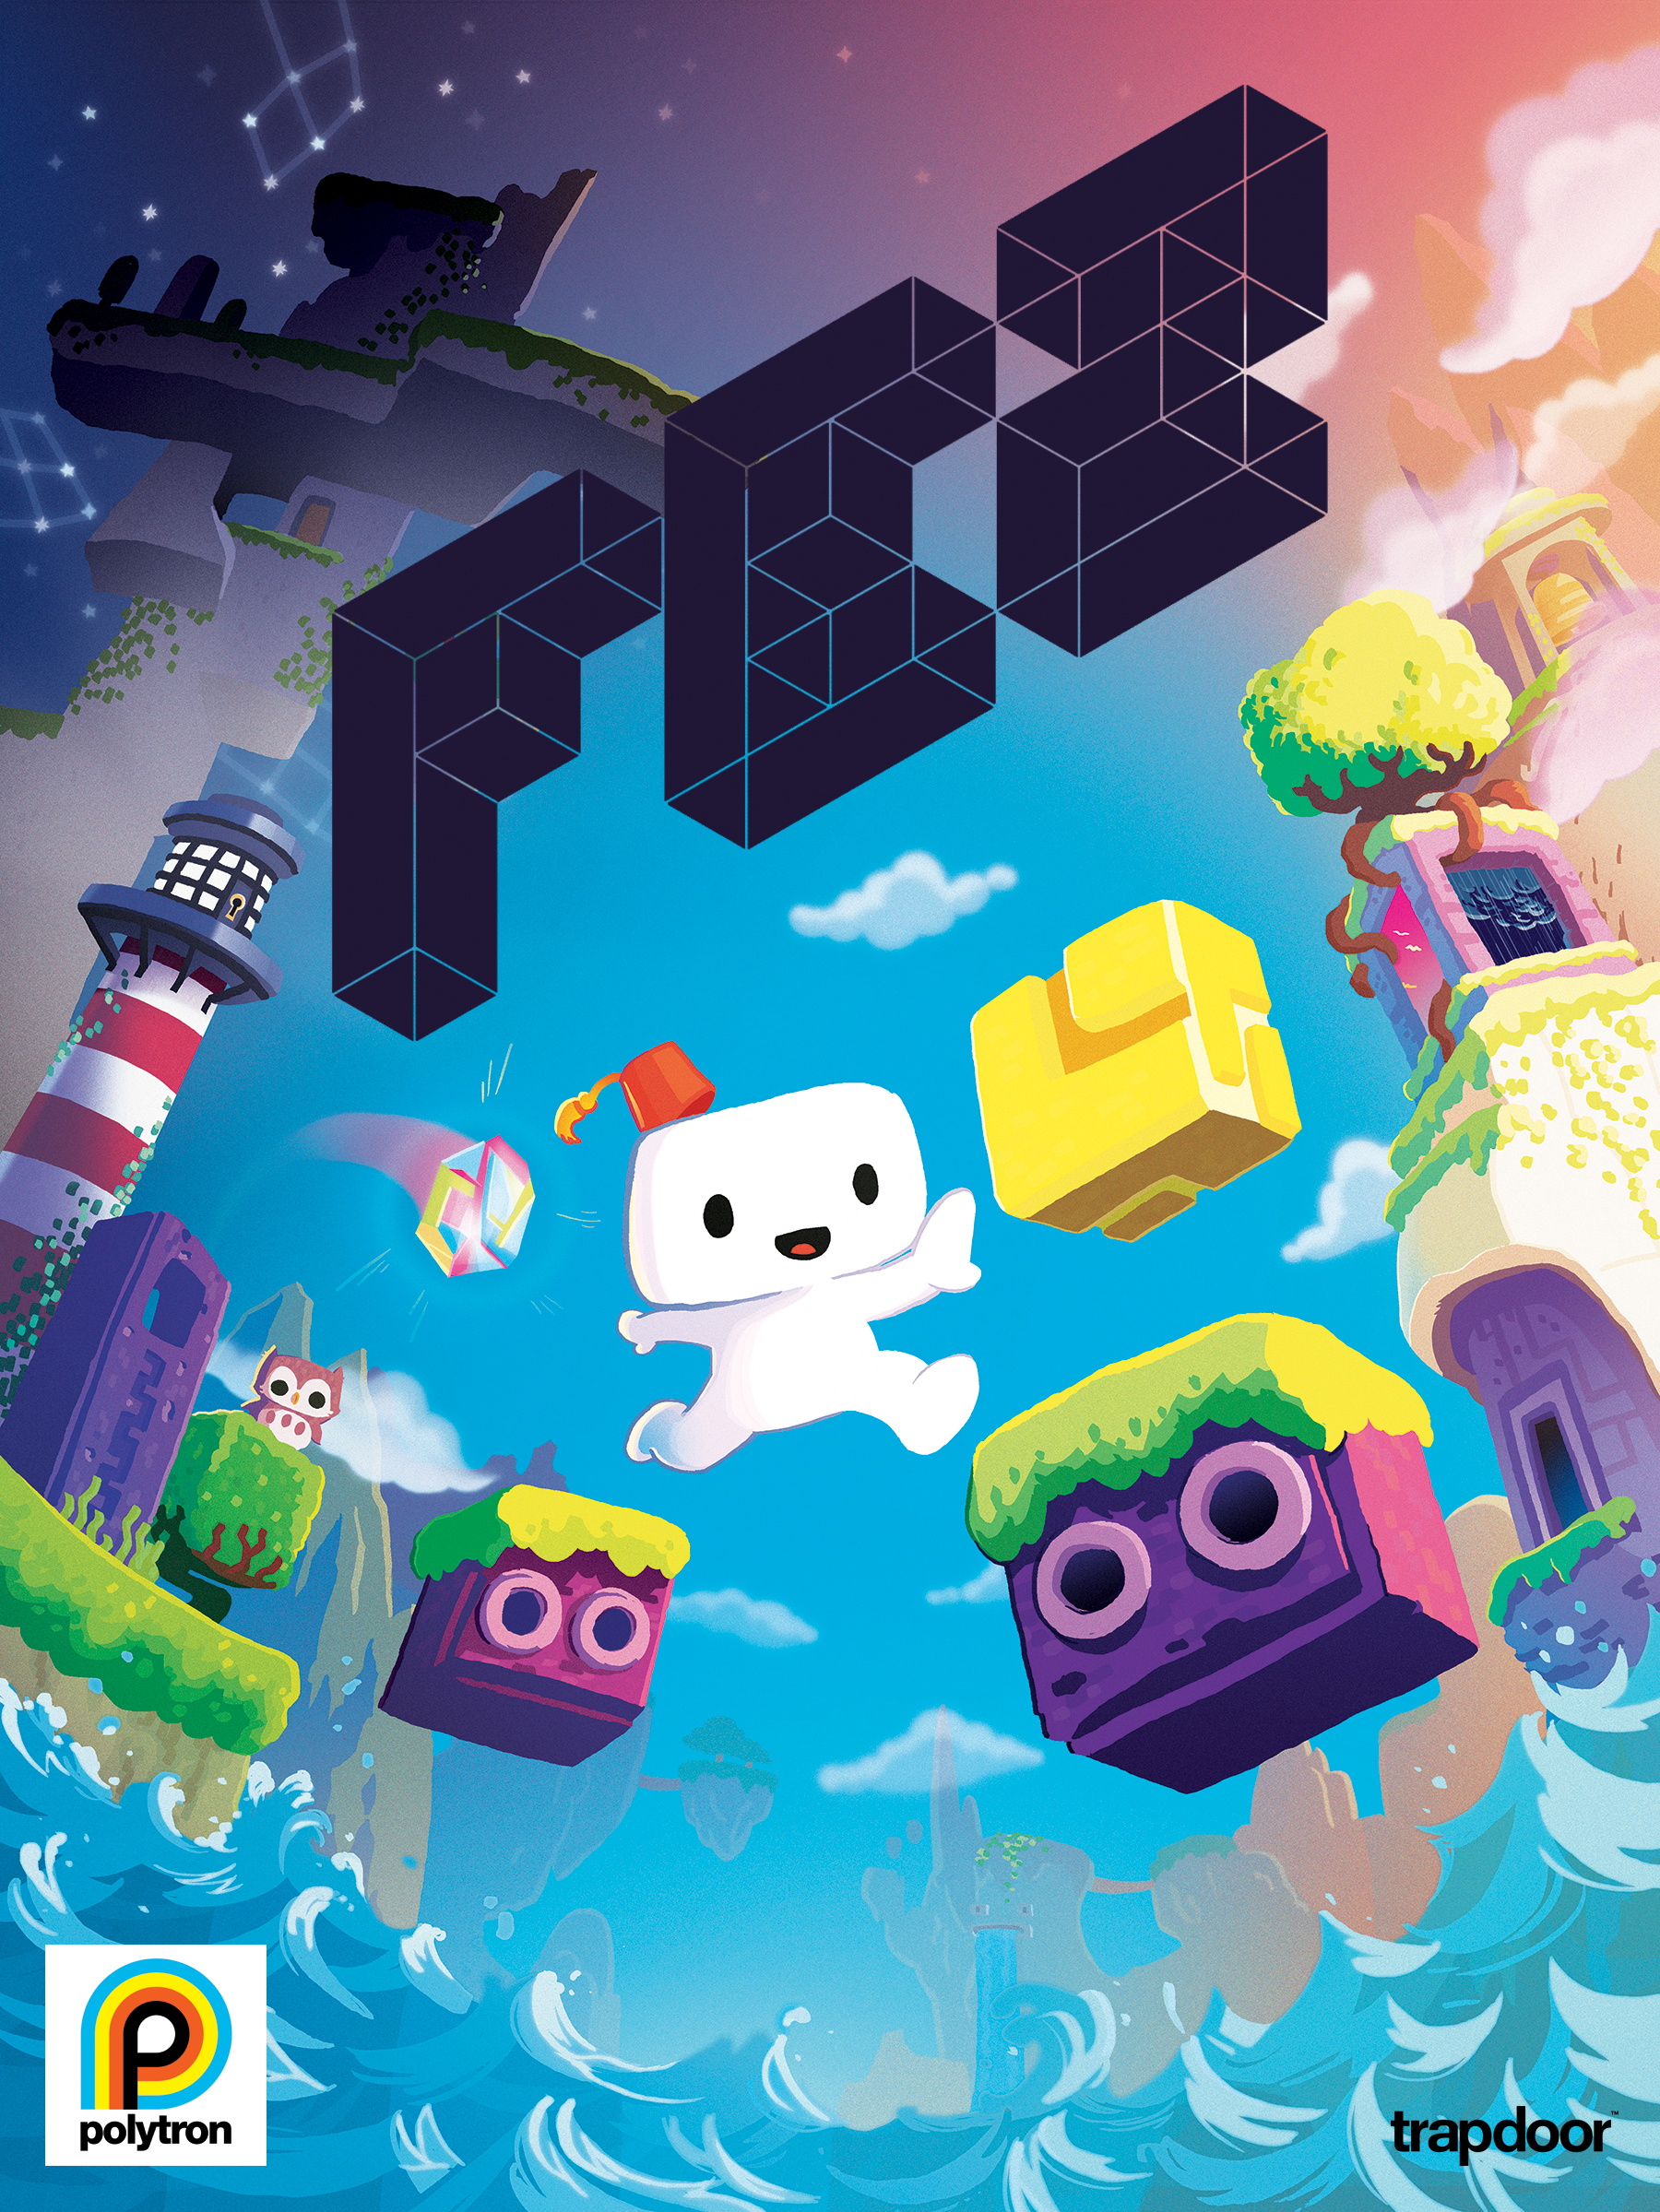 Fez (video game) - Wikipedia